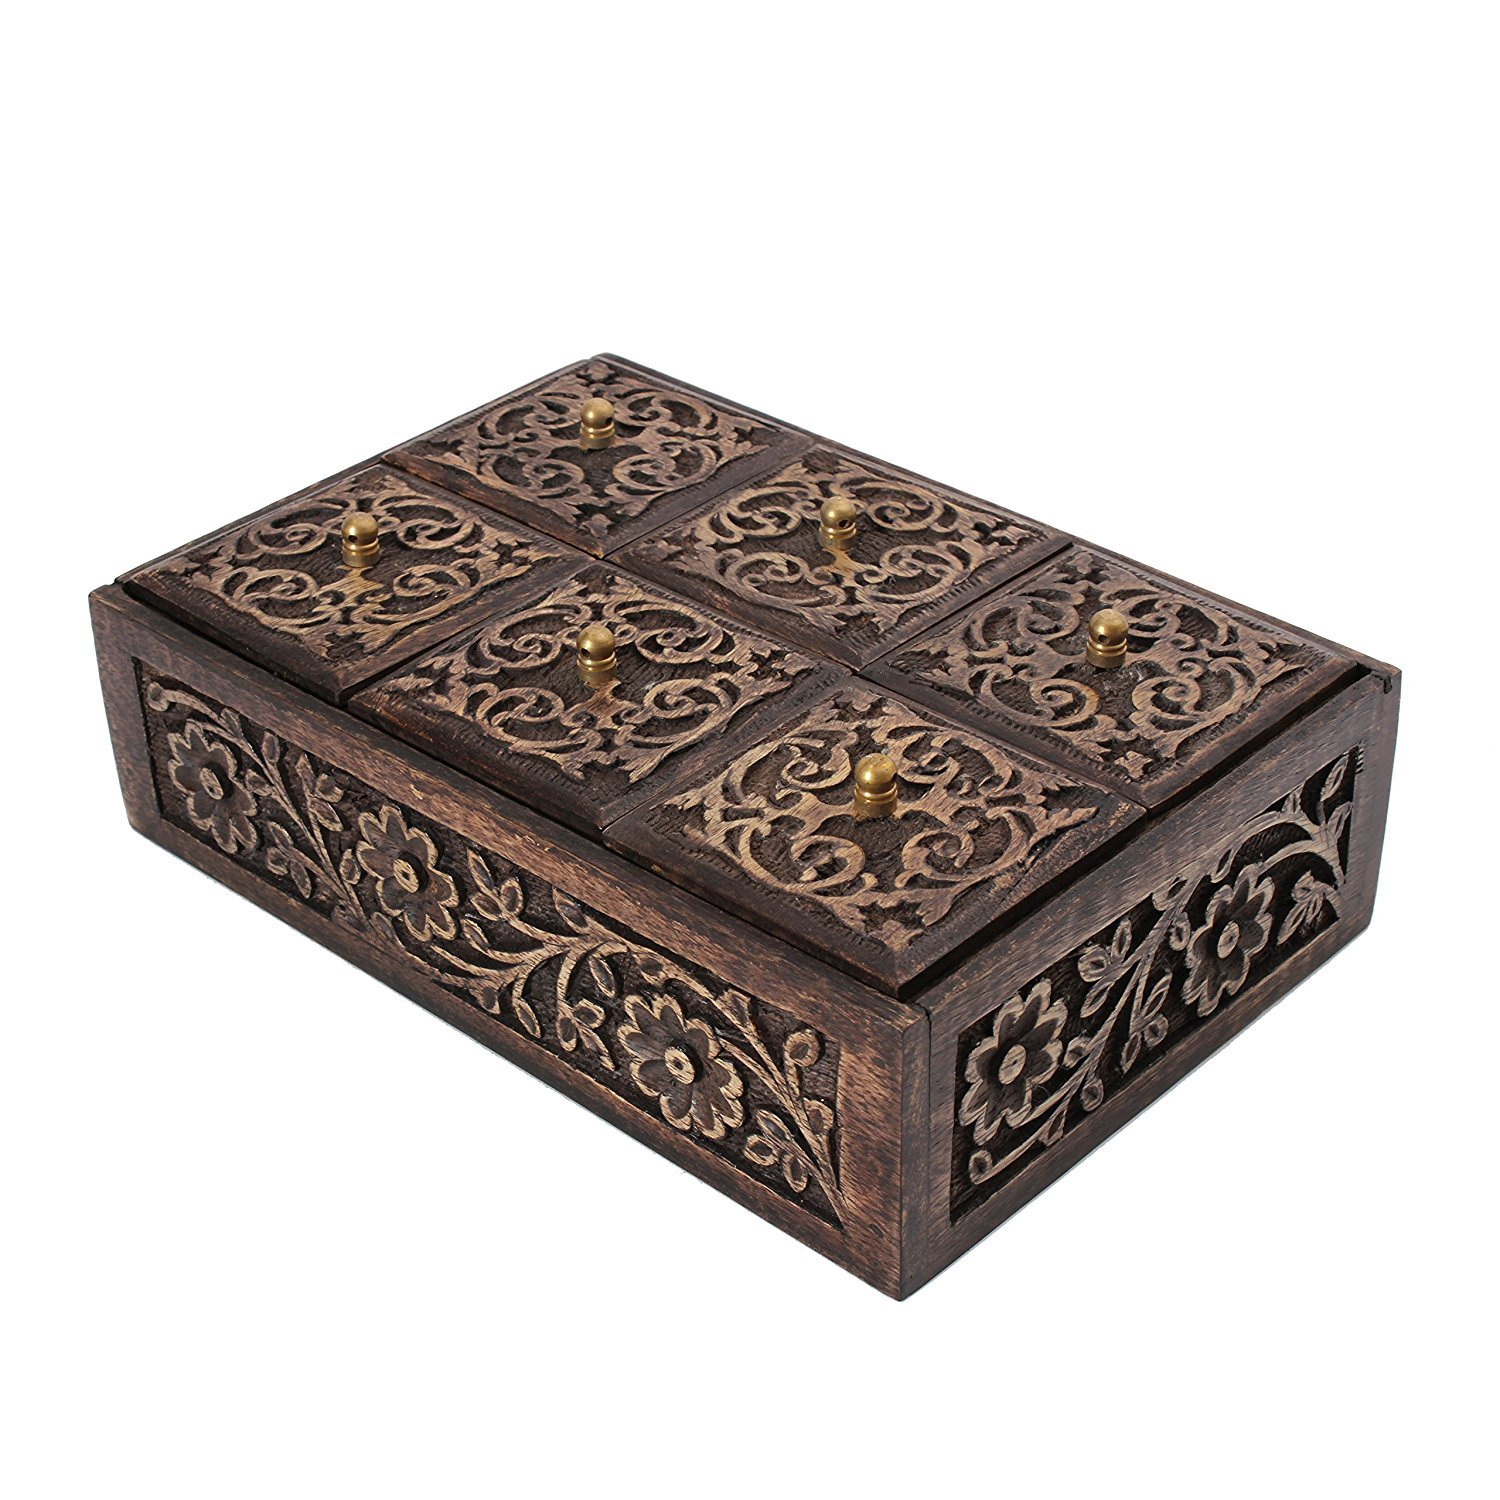 storeindya, Multi Purpose Wooden Organizer Box Tea Bags-Spices-Condiments-Candies-Stops from Spoilage-Air Tight-Compartmentalized-for Kitchen, Office & Home Use (Mughal Art Collection)